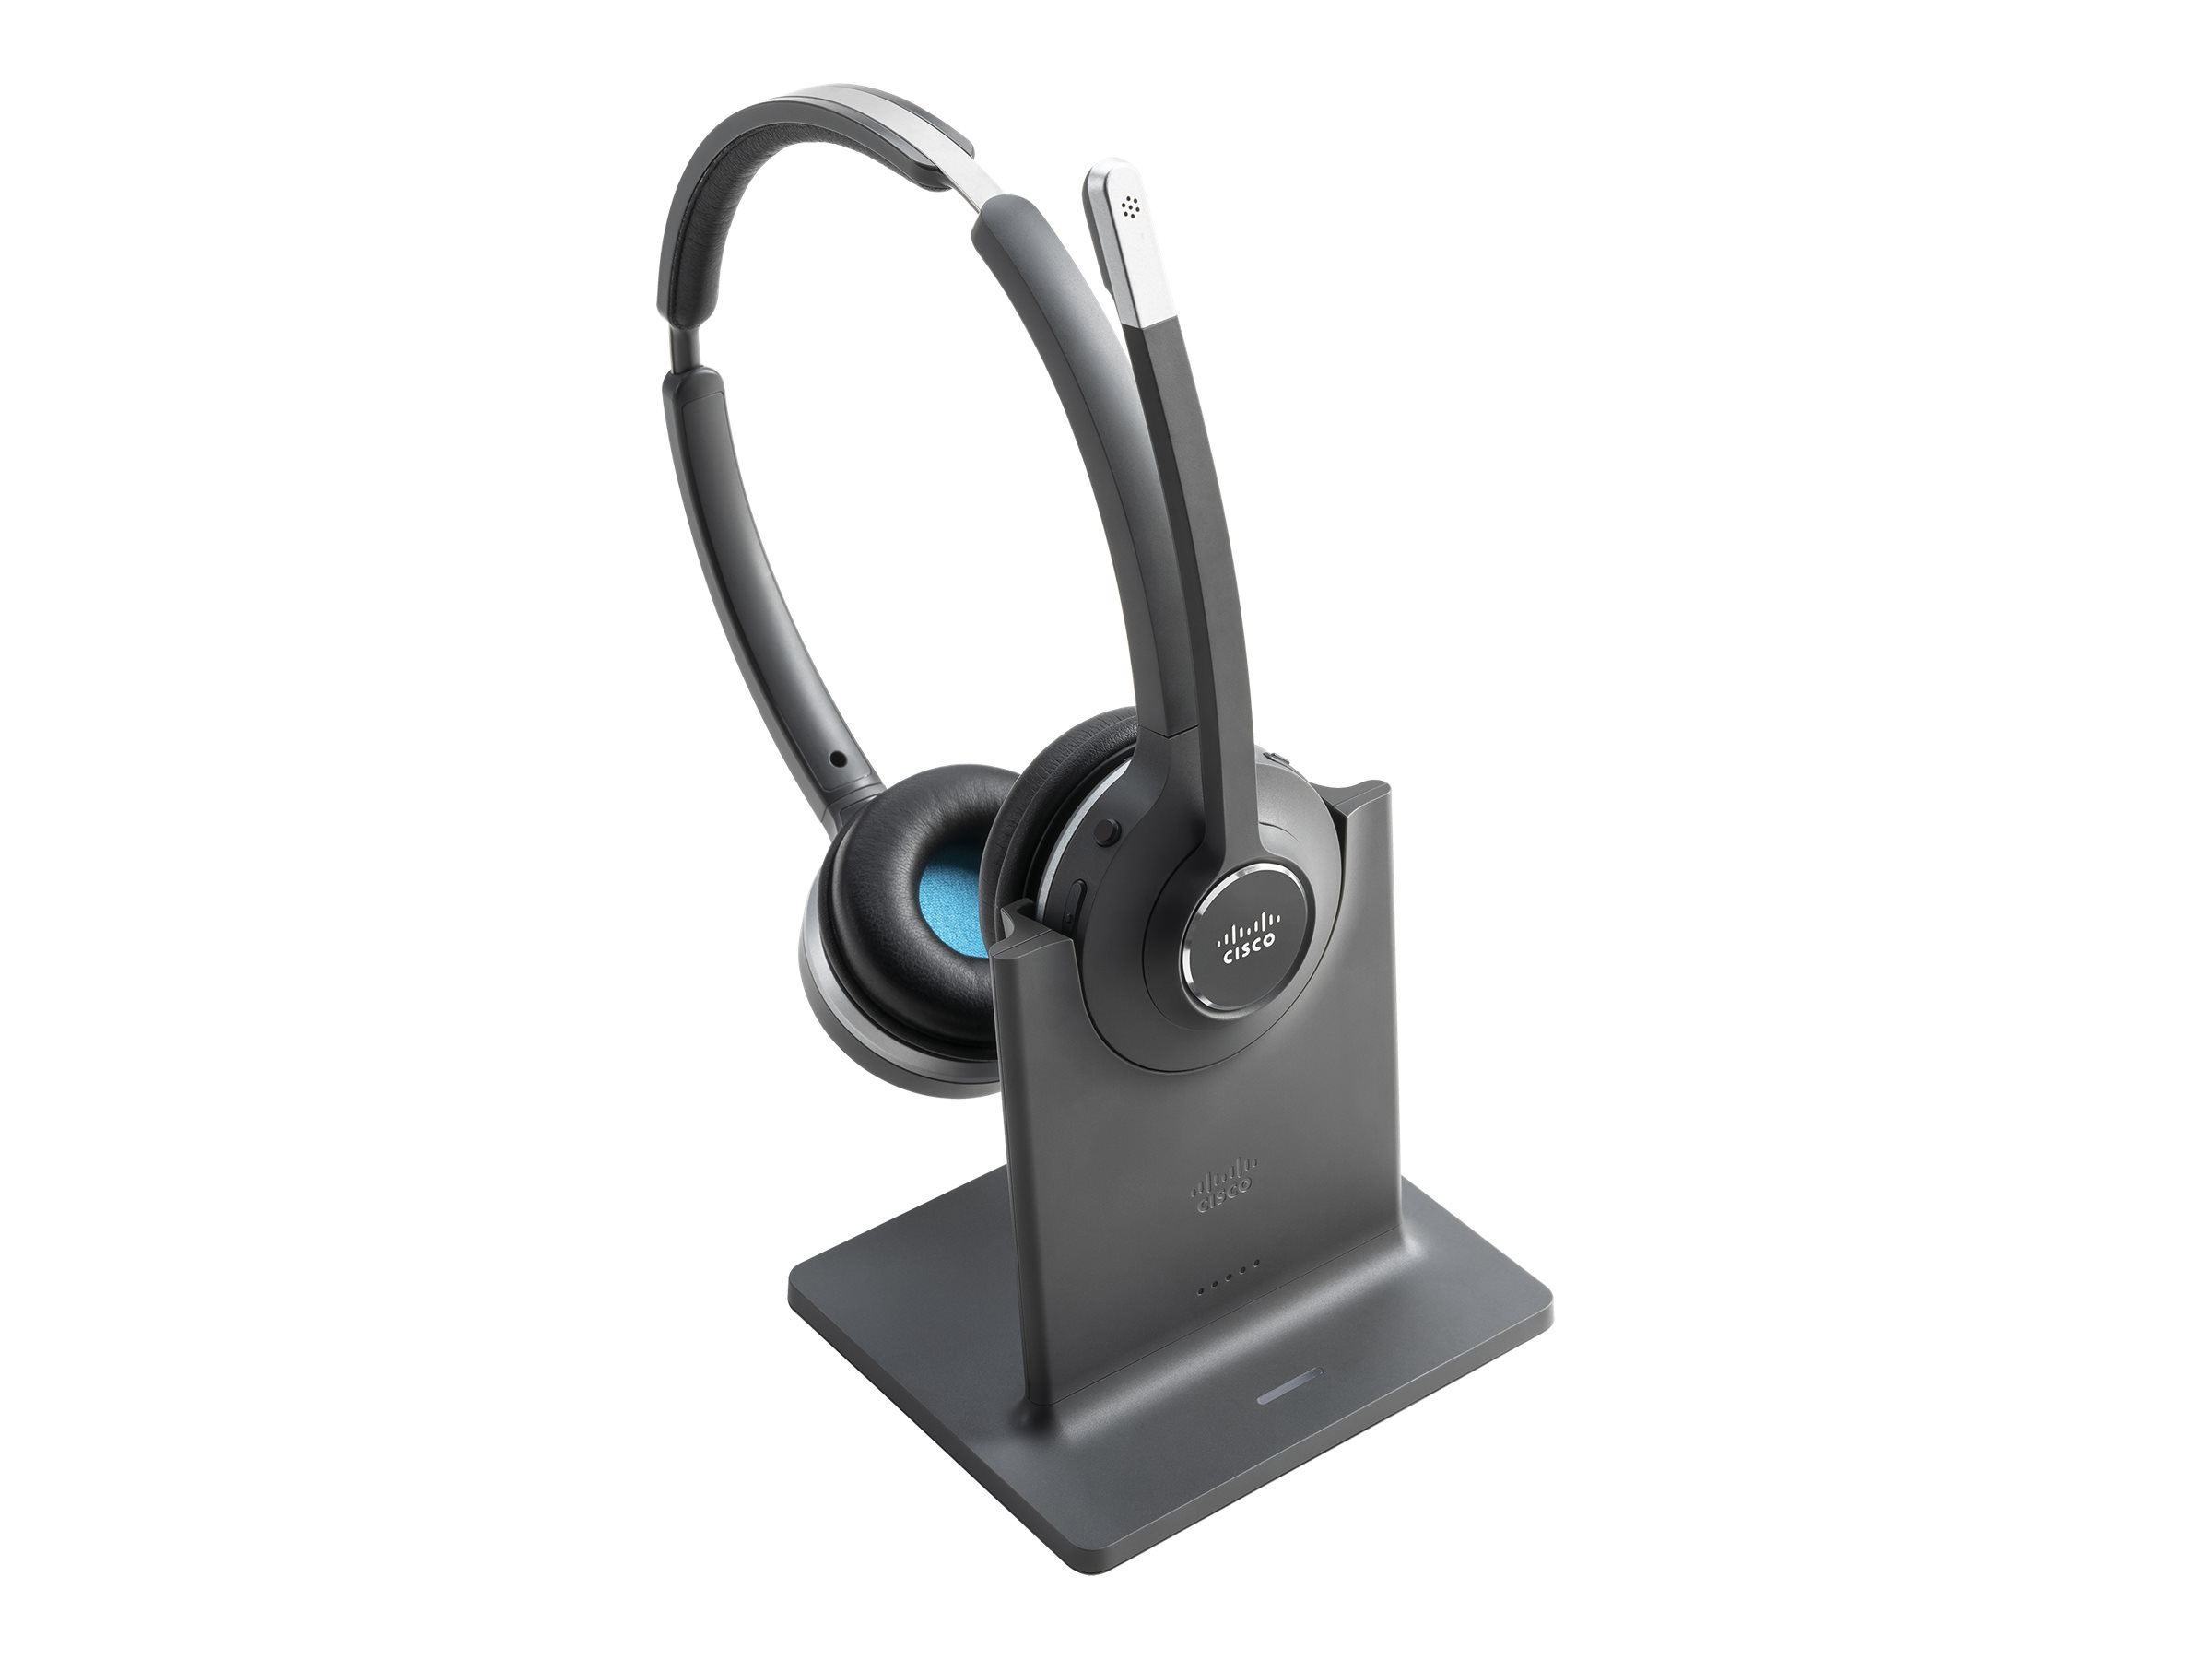 Cisco 562 Wireless Dual - headset